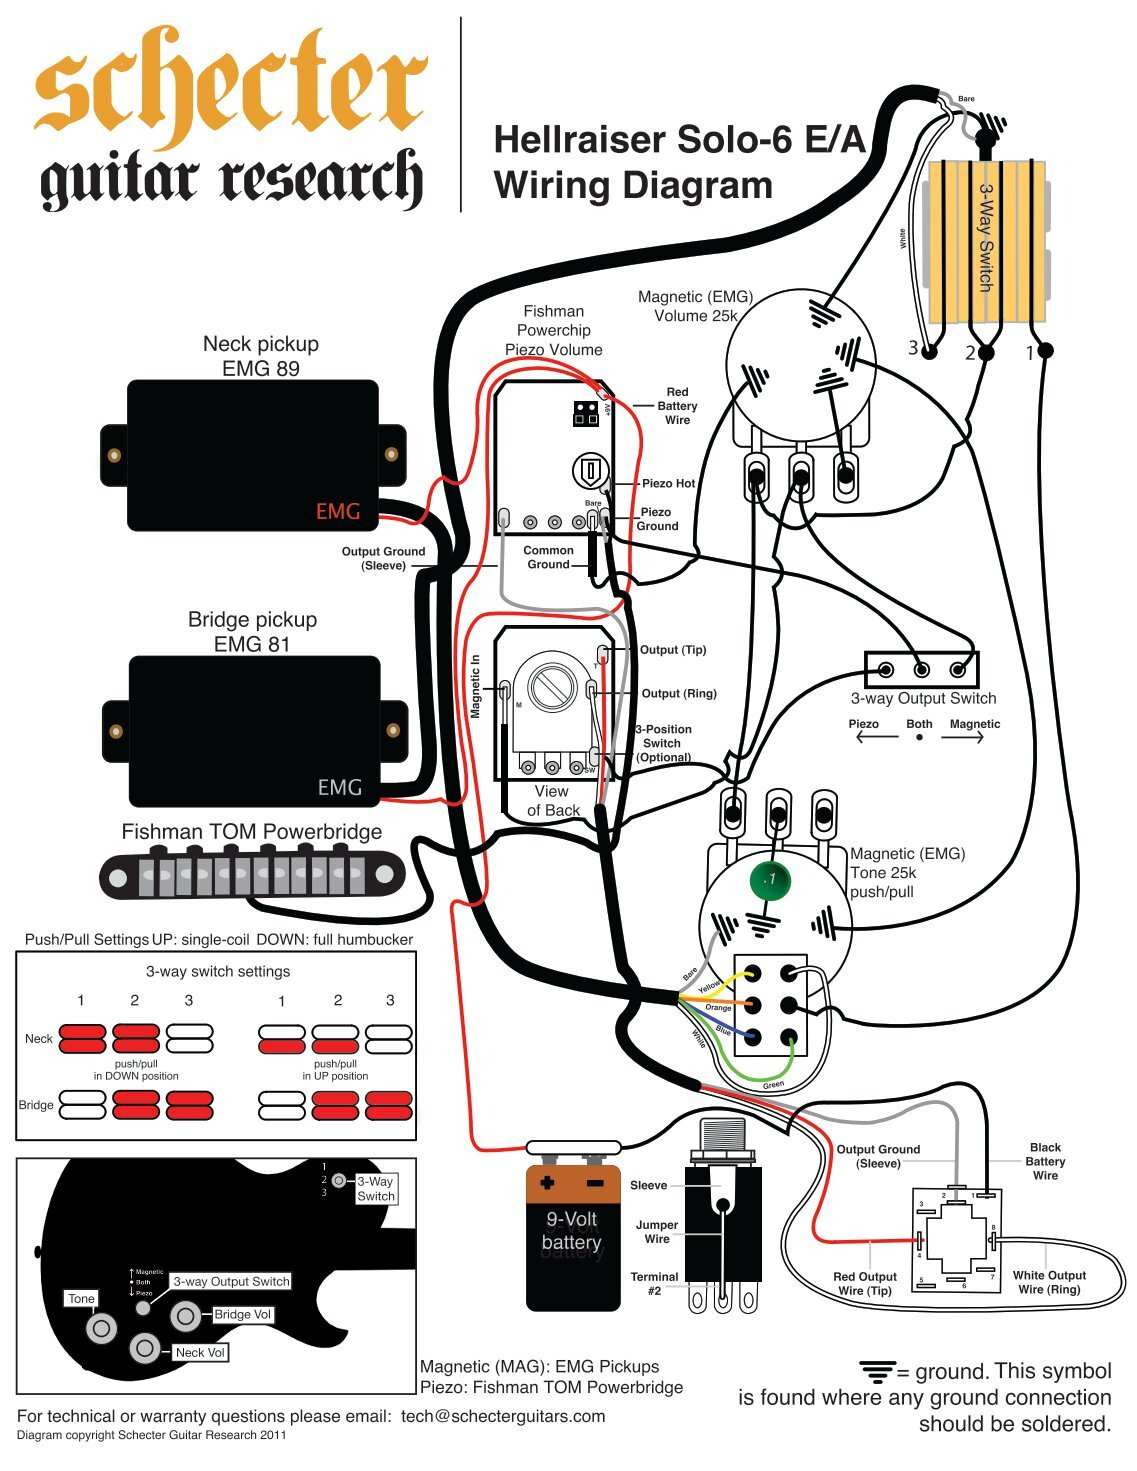 hellraiser solo 6 wiring diagram schecter guitars?resize\\\\\\\\\\\=665%2C860\\\\\\\\\\\&ssl\\\\\\\\\\\=1 outstanding emg solderless wiring diagram contemporary wiring  at readyjetset.co